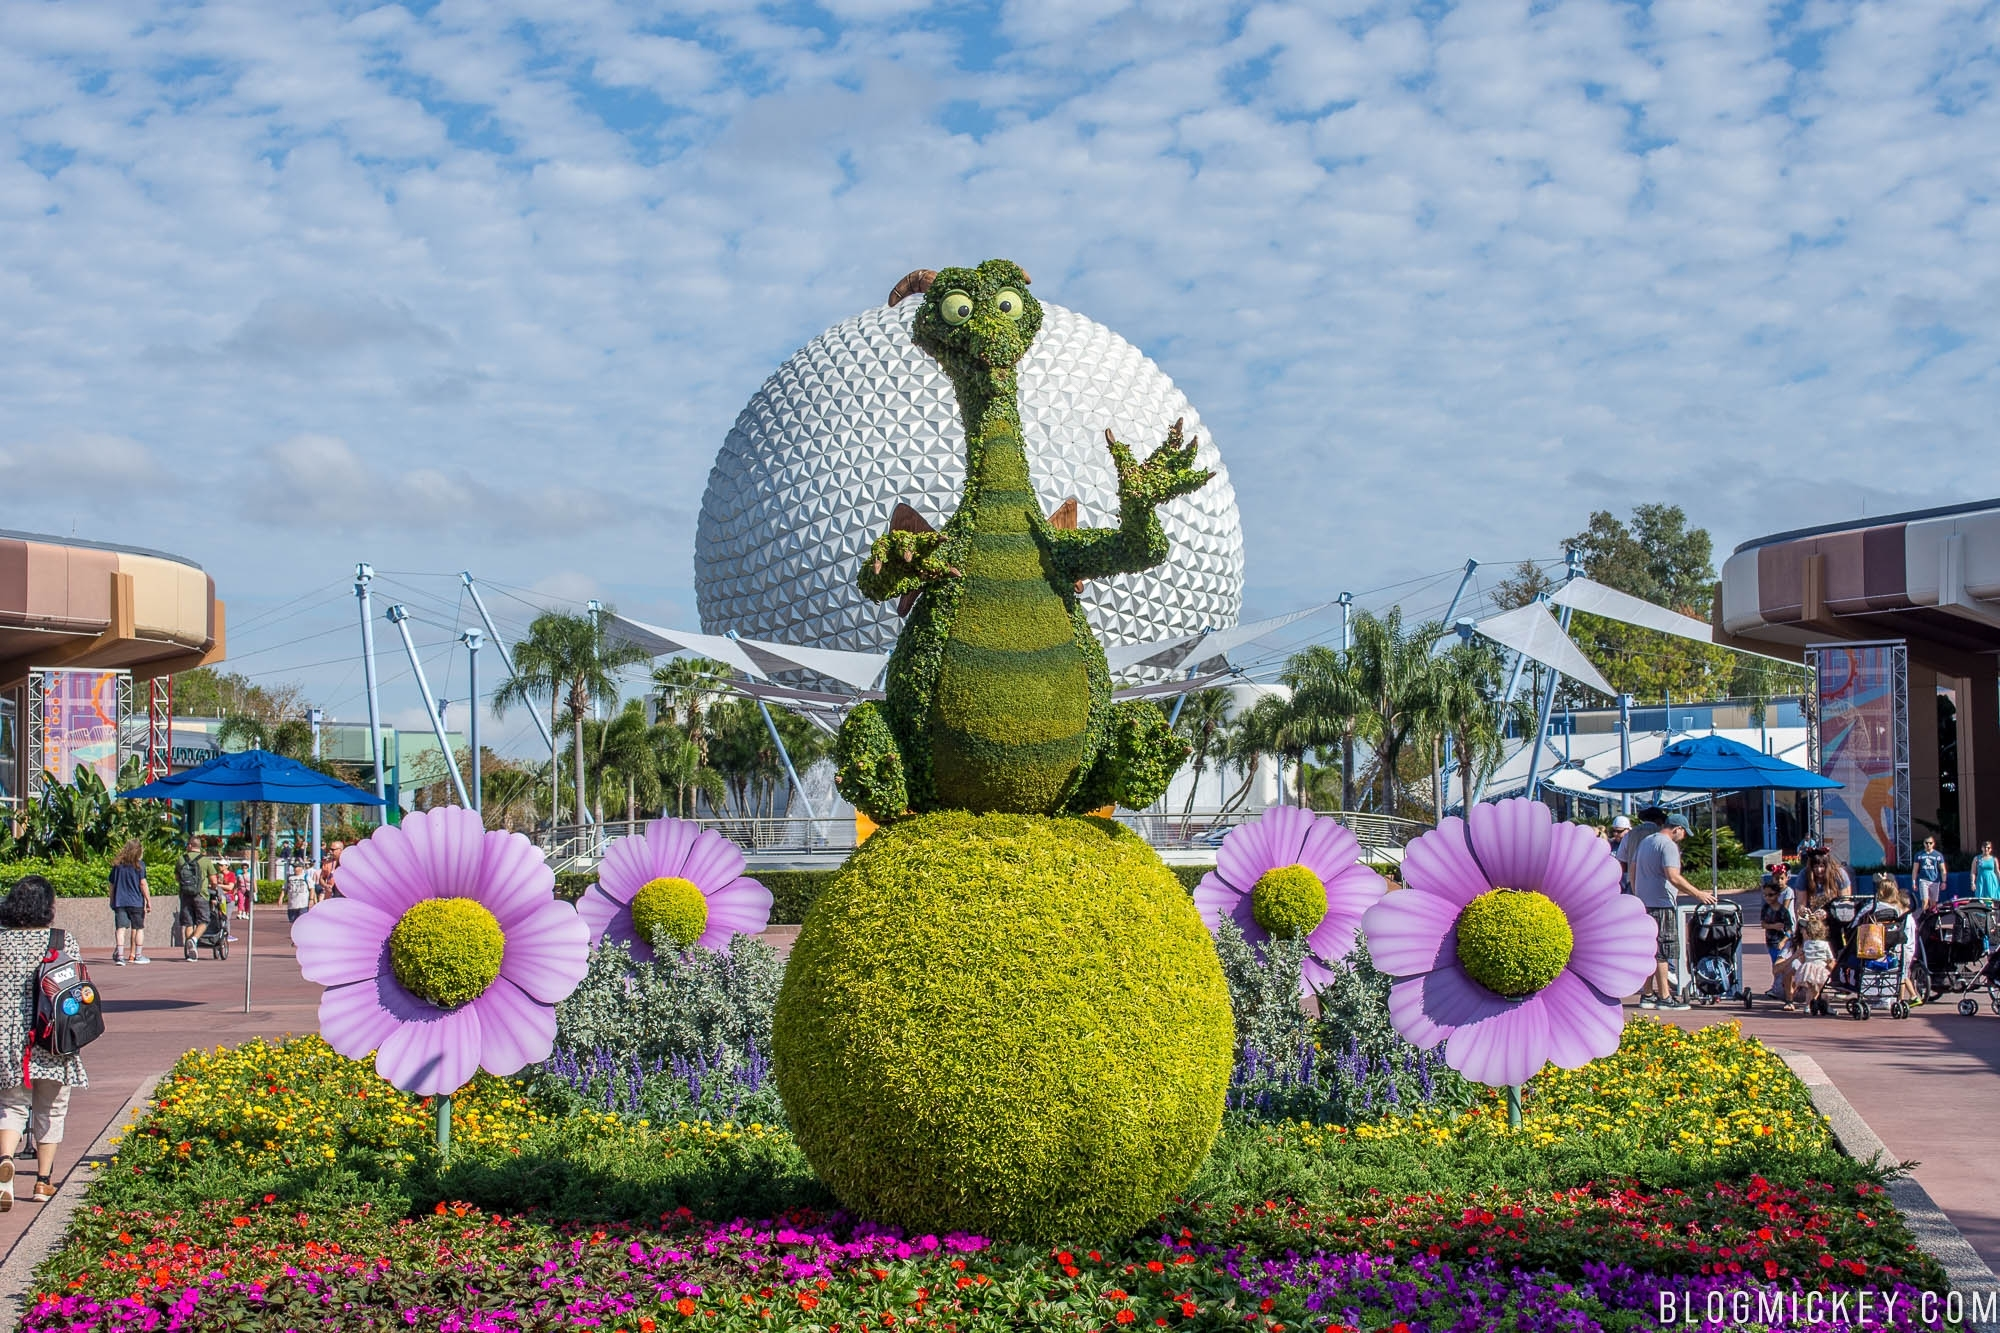 Dates Announced For 2019 Epcot International Festival Of The Arts with regard to Garden And Flower Festival Epcot